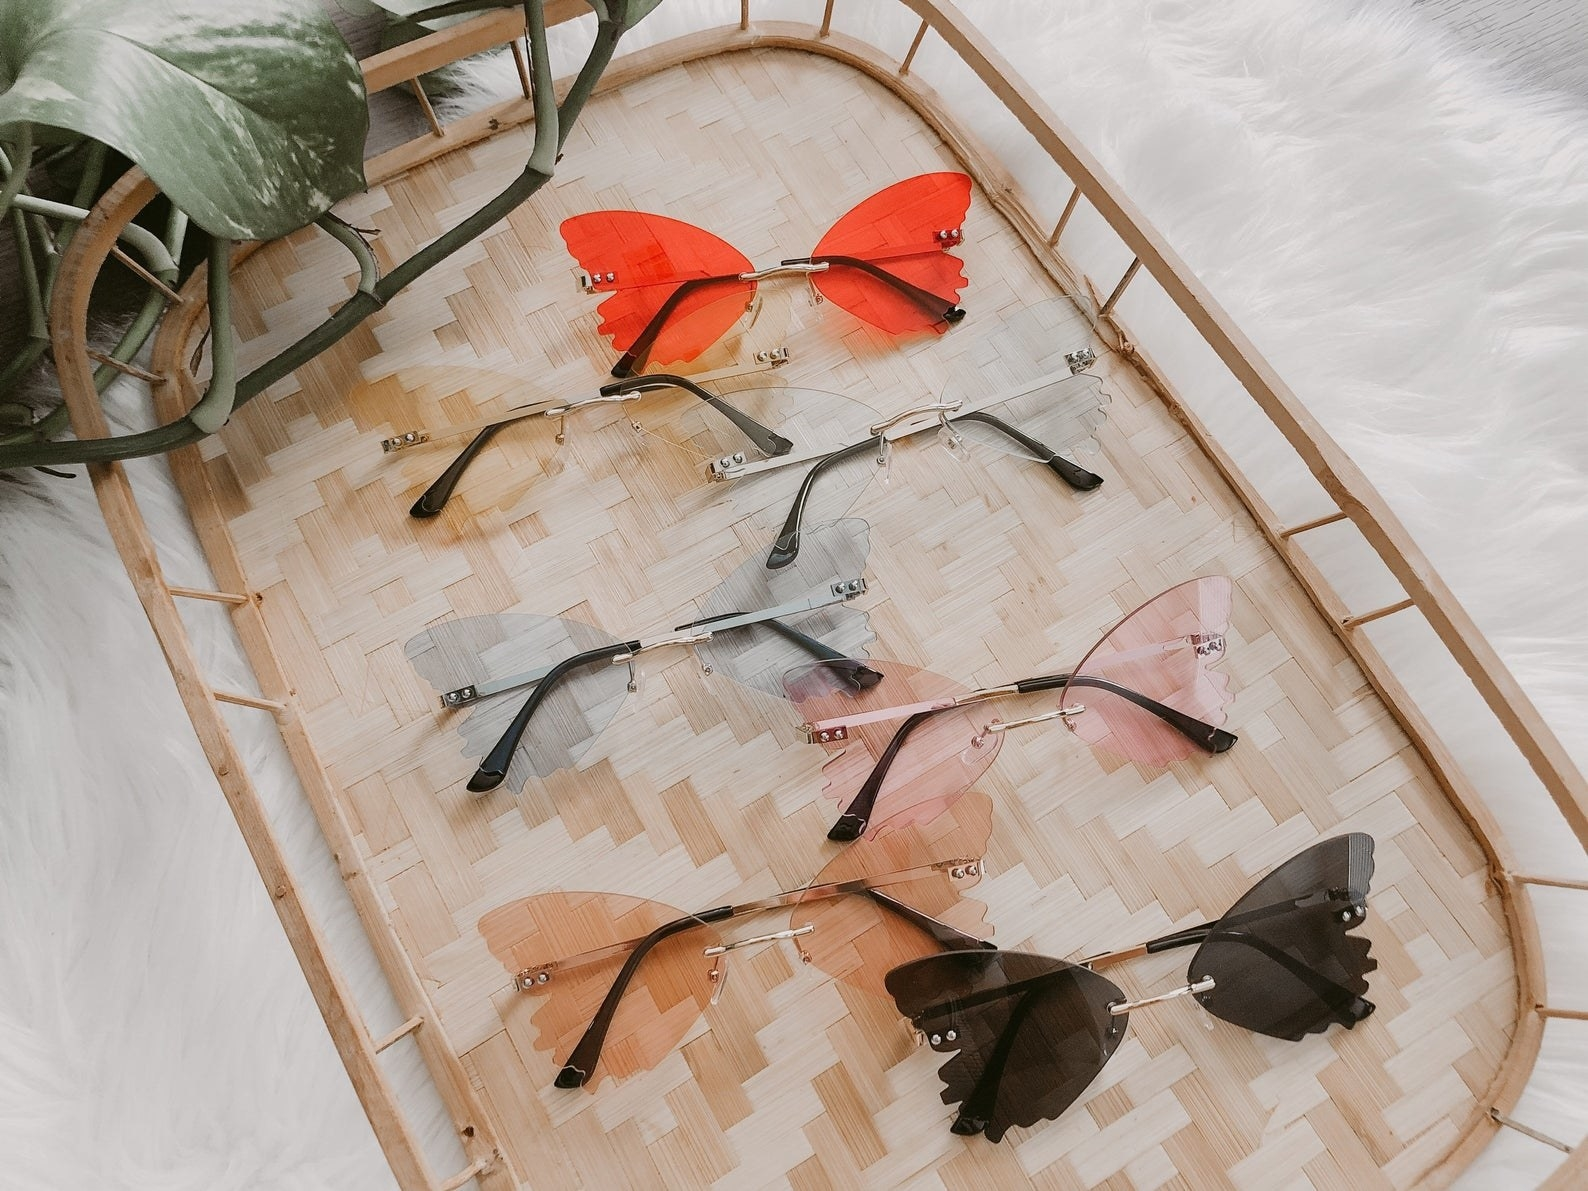 six pairs of sunglasses with frames that are shaped like butterfly wings